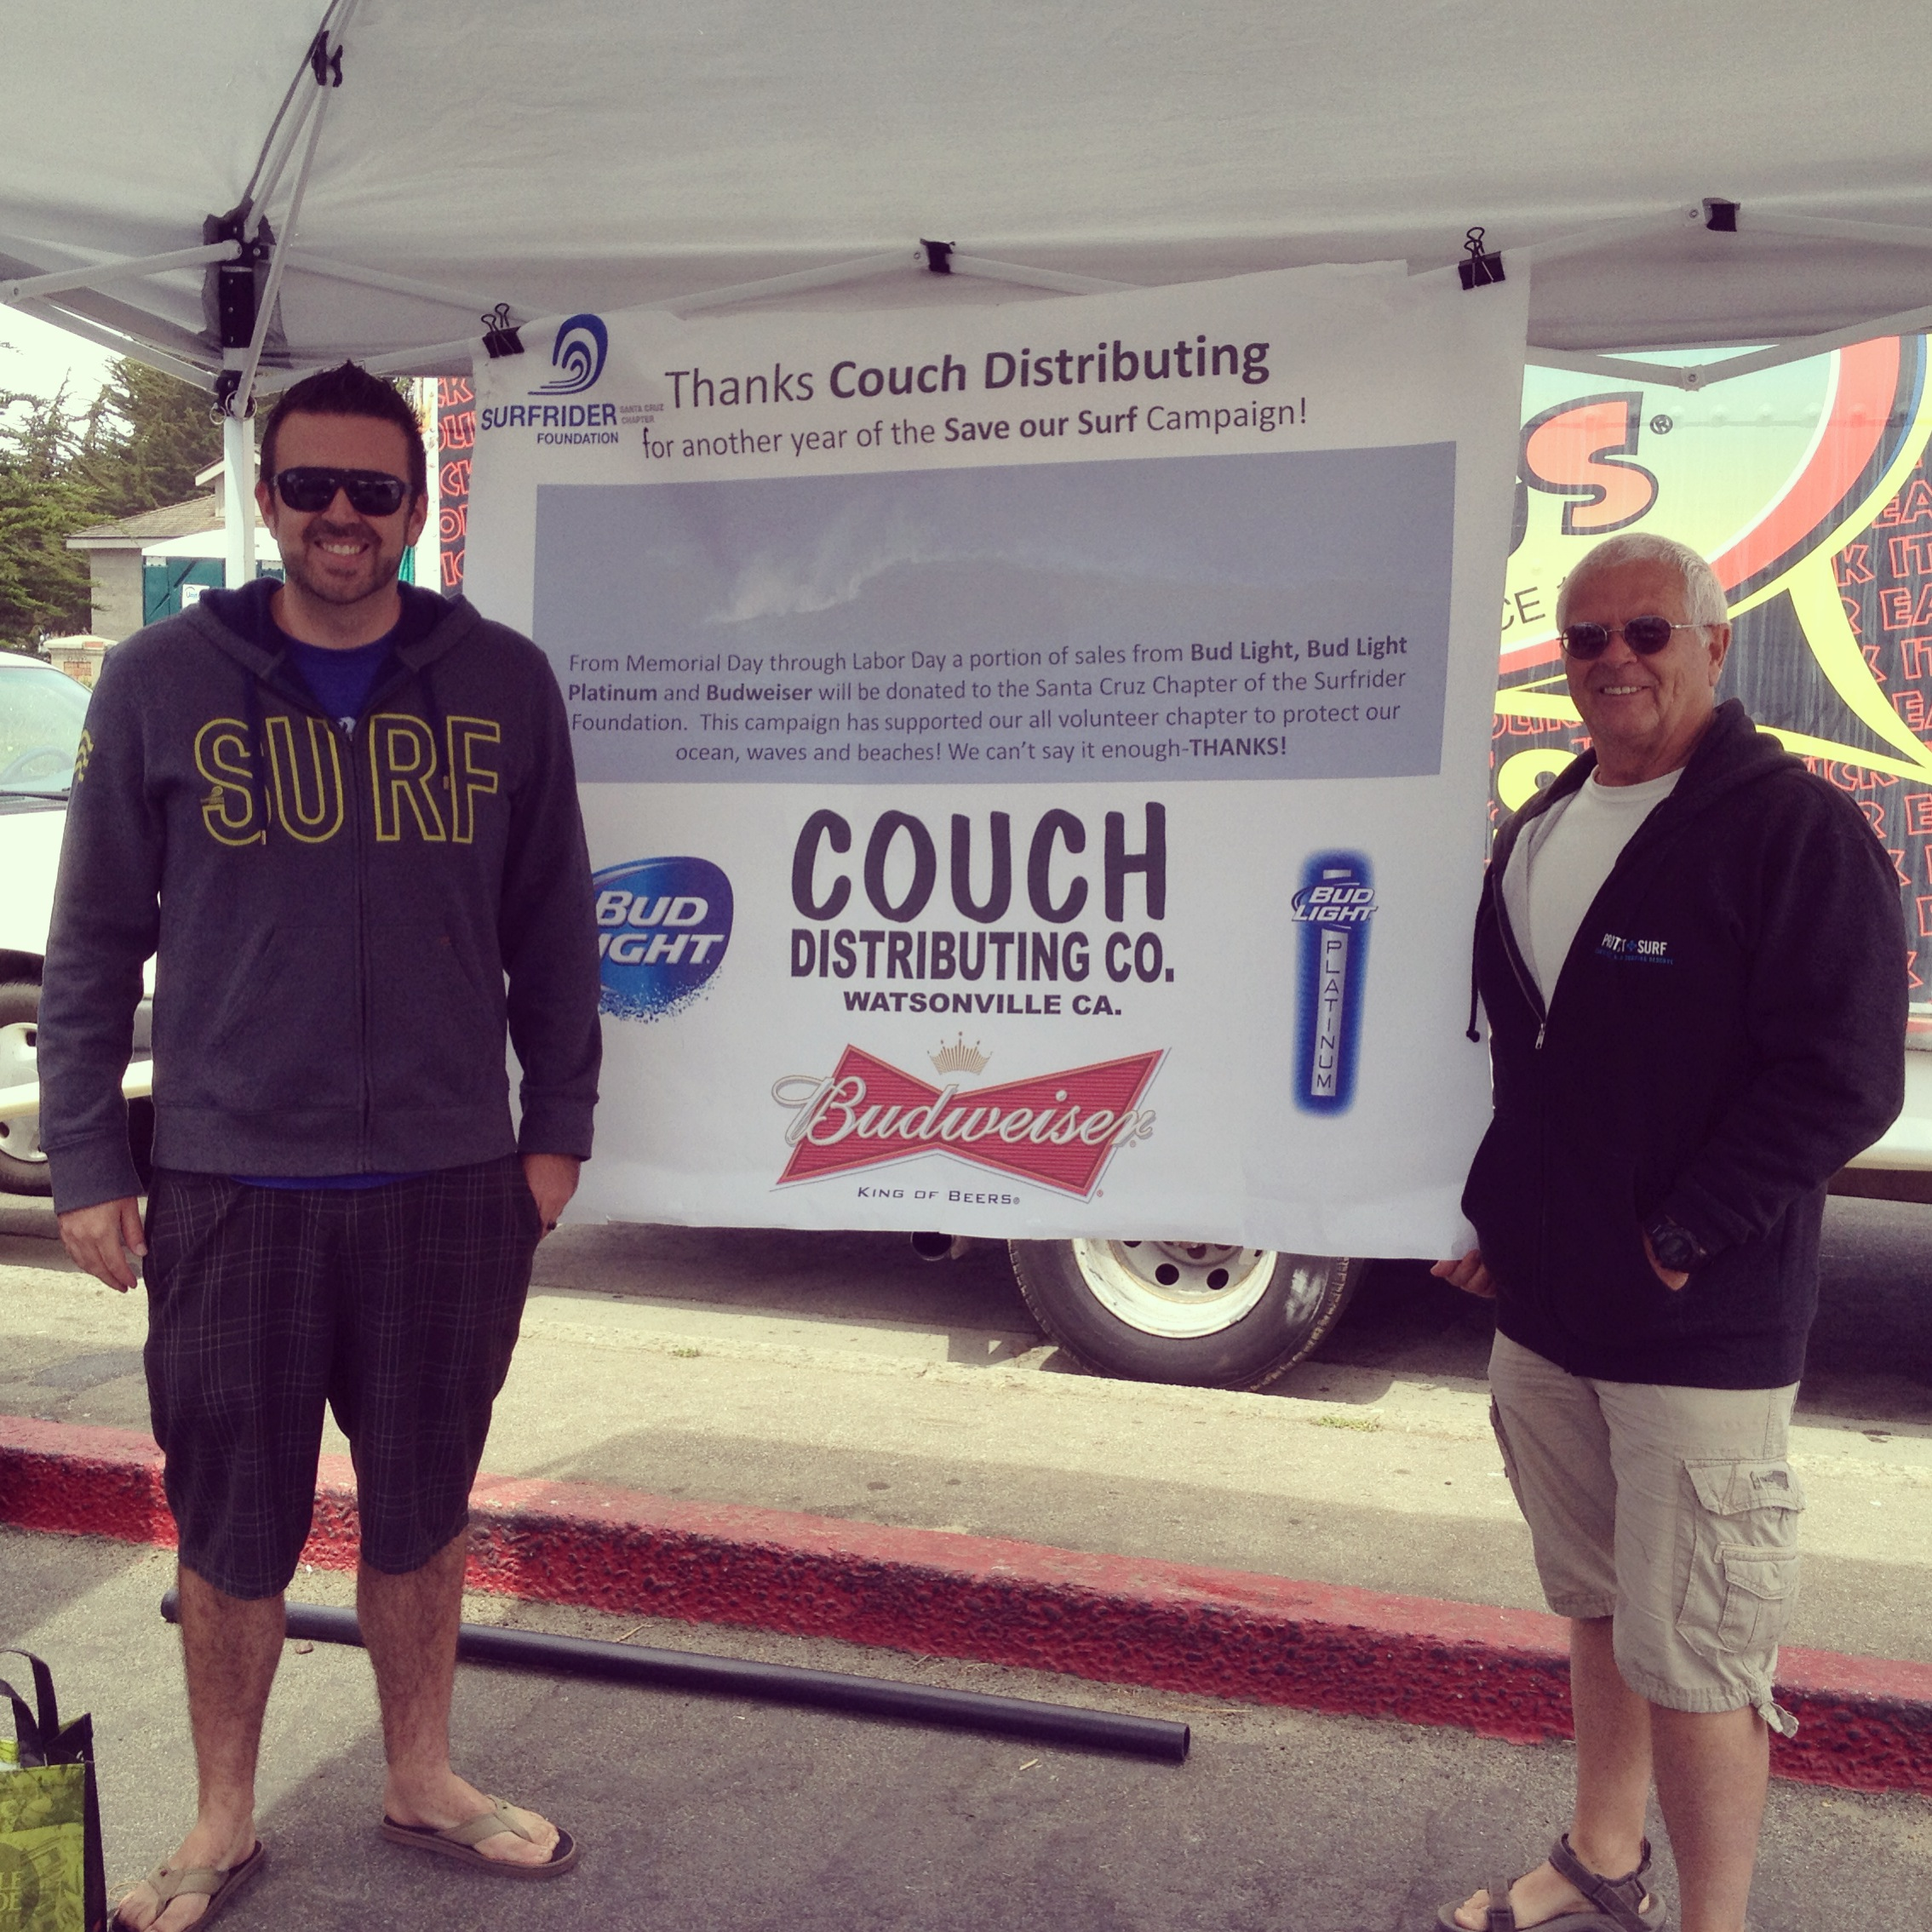 For The 18th Consecutive Year Couch Distributing Sponsored Our Save Surf Program Started In 1996 By Local Distributor Of Anheuser Busch Beers And